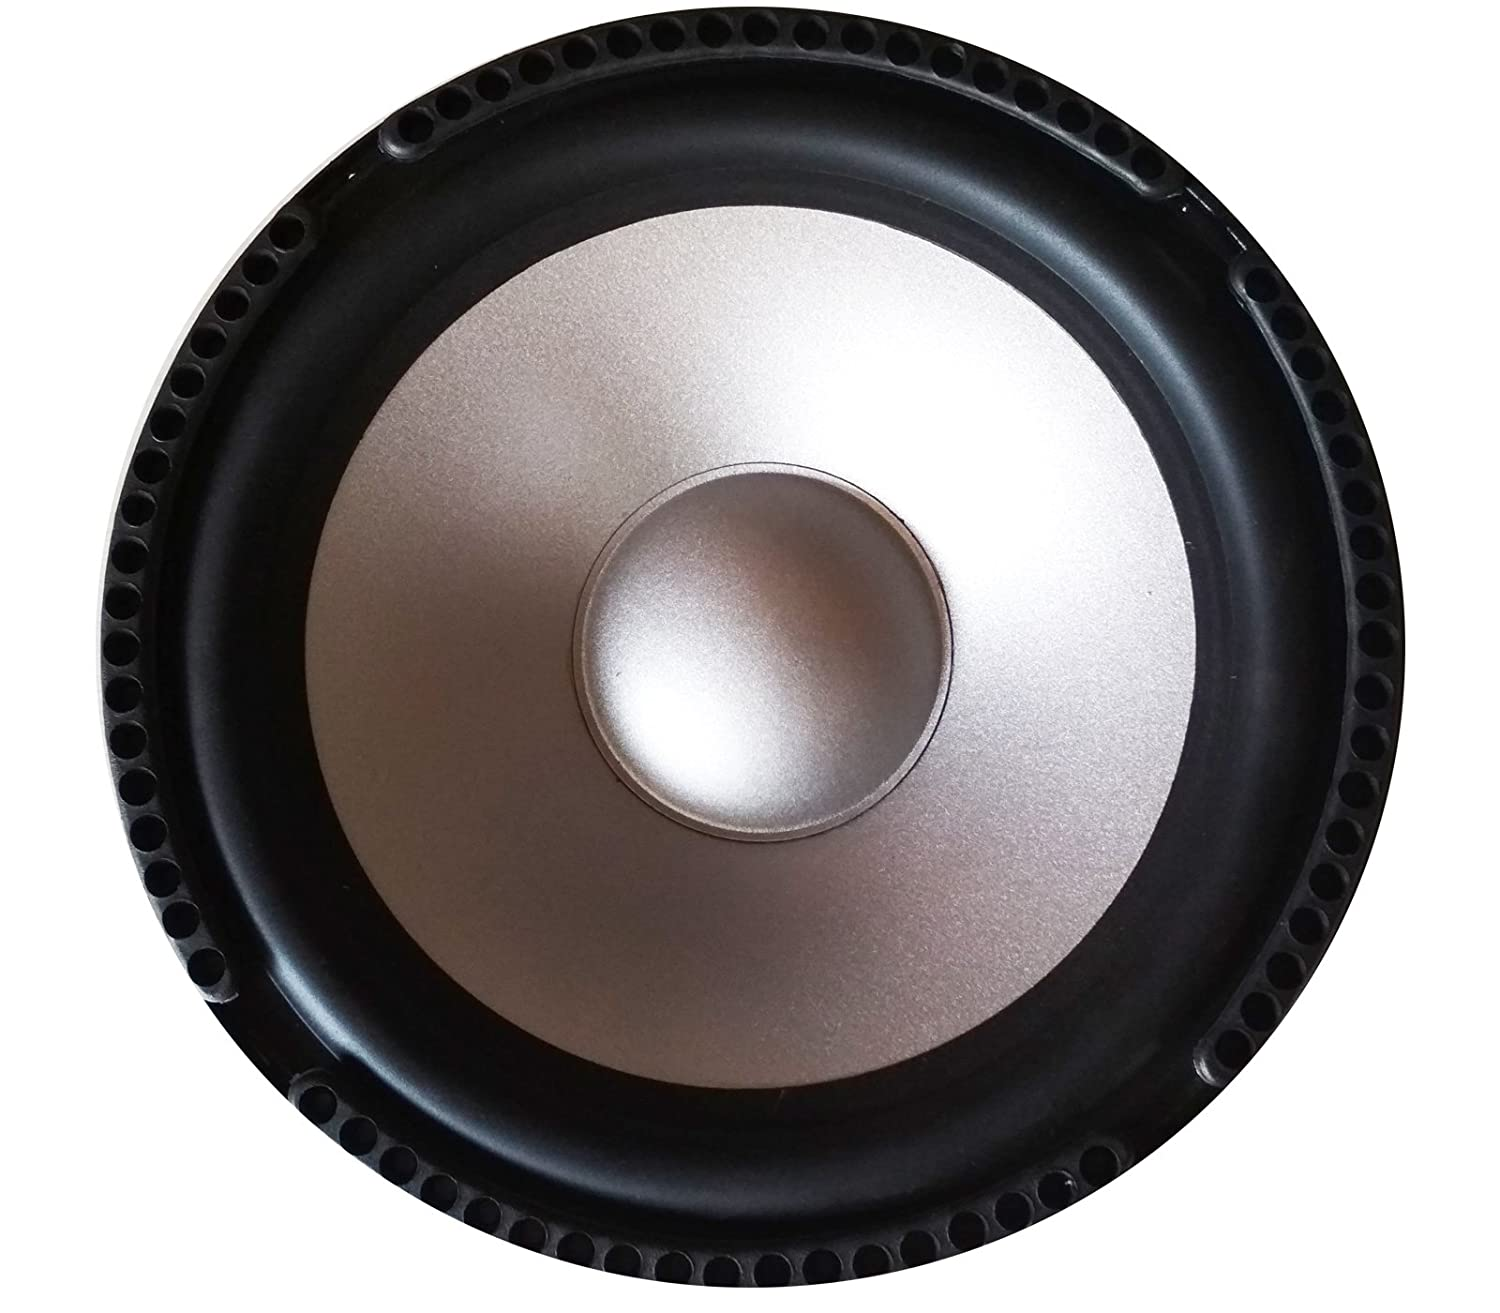 Crispy Deals Hylex 10 inch 10W Full Bass Speakers (Assorted Color)